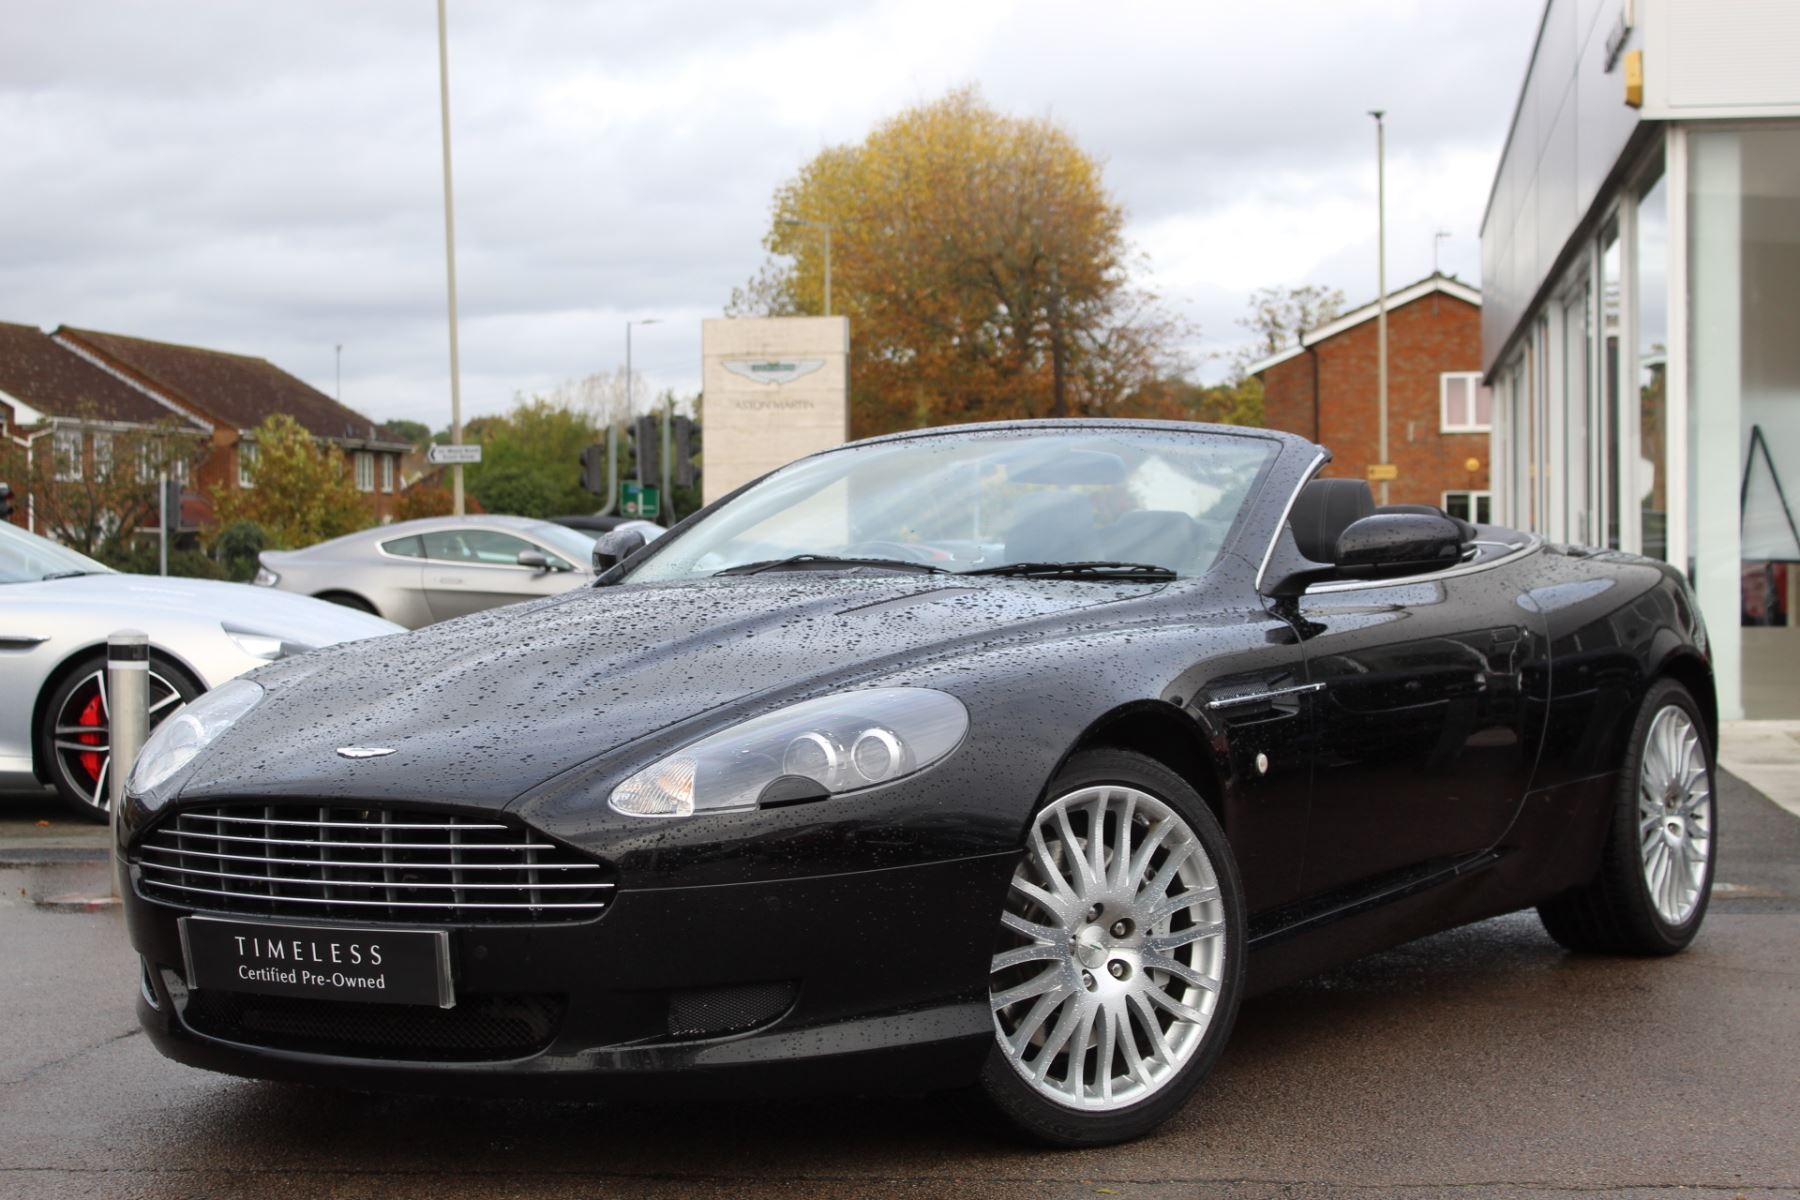 Aston Martin DB9 V12 2dr Volante Touchtronic [470] 5.9 Automatic Convertible (2009) image